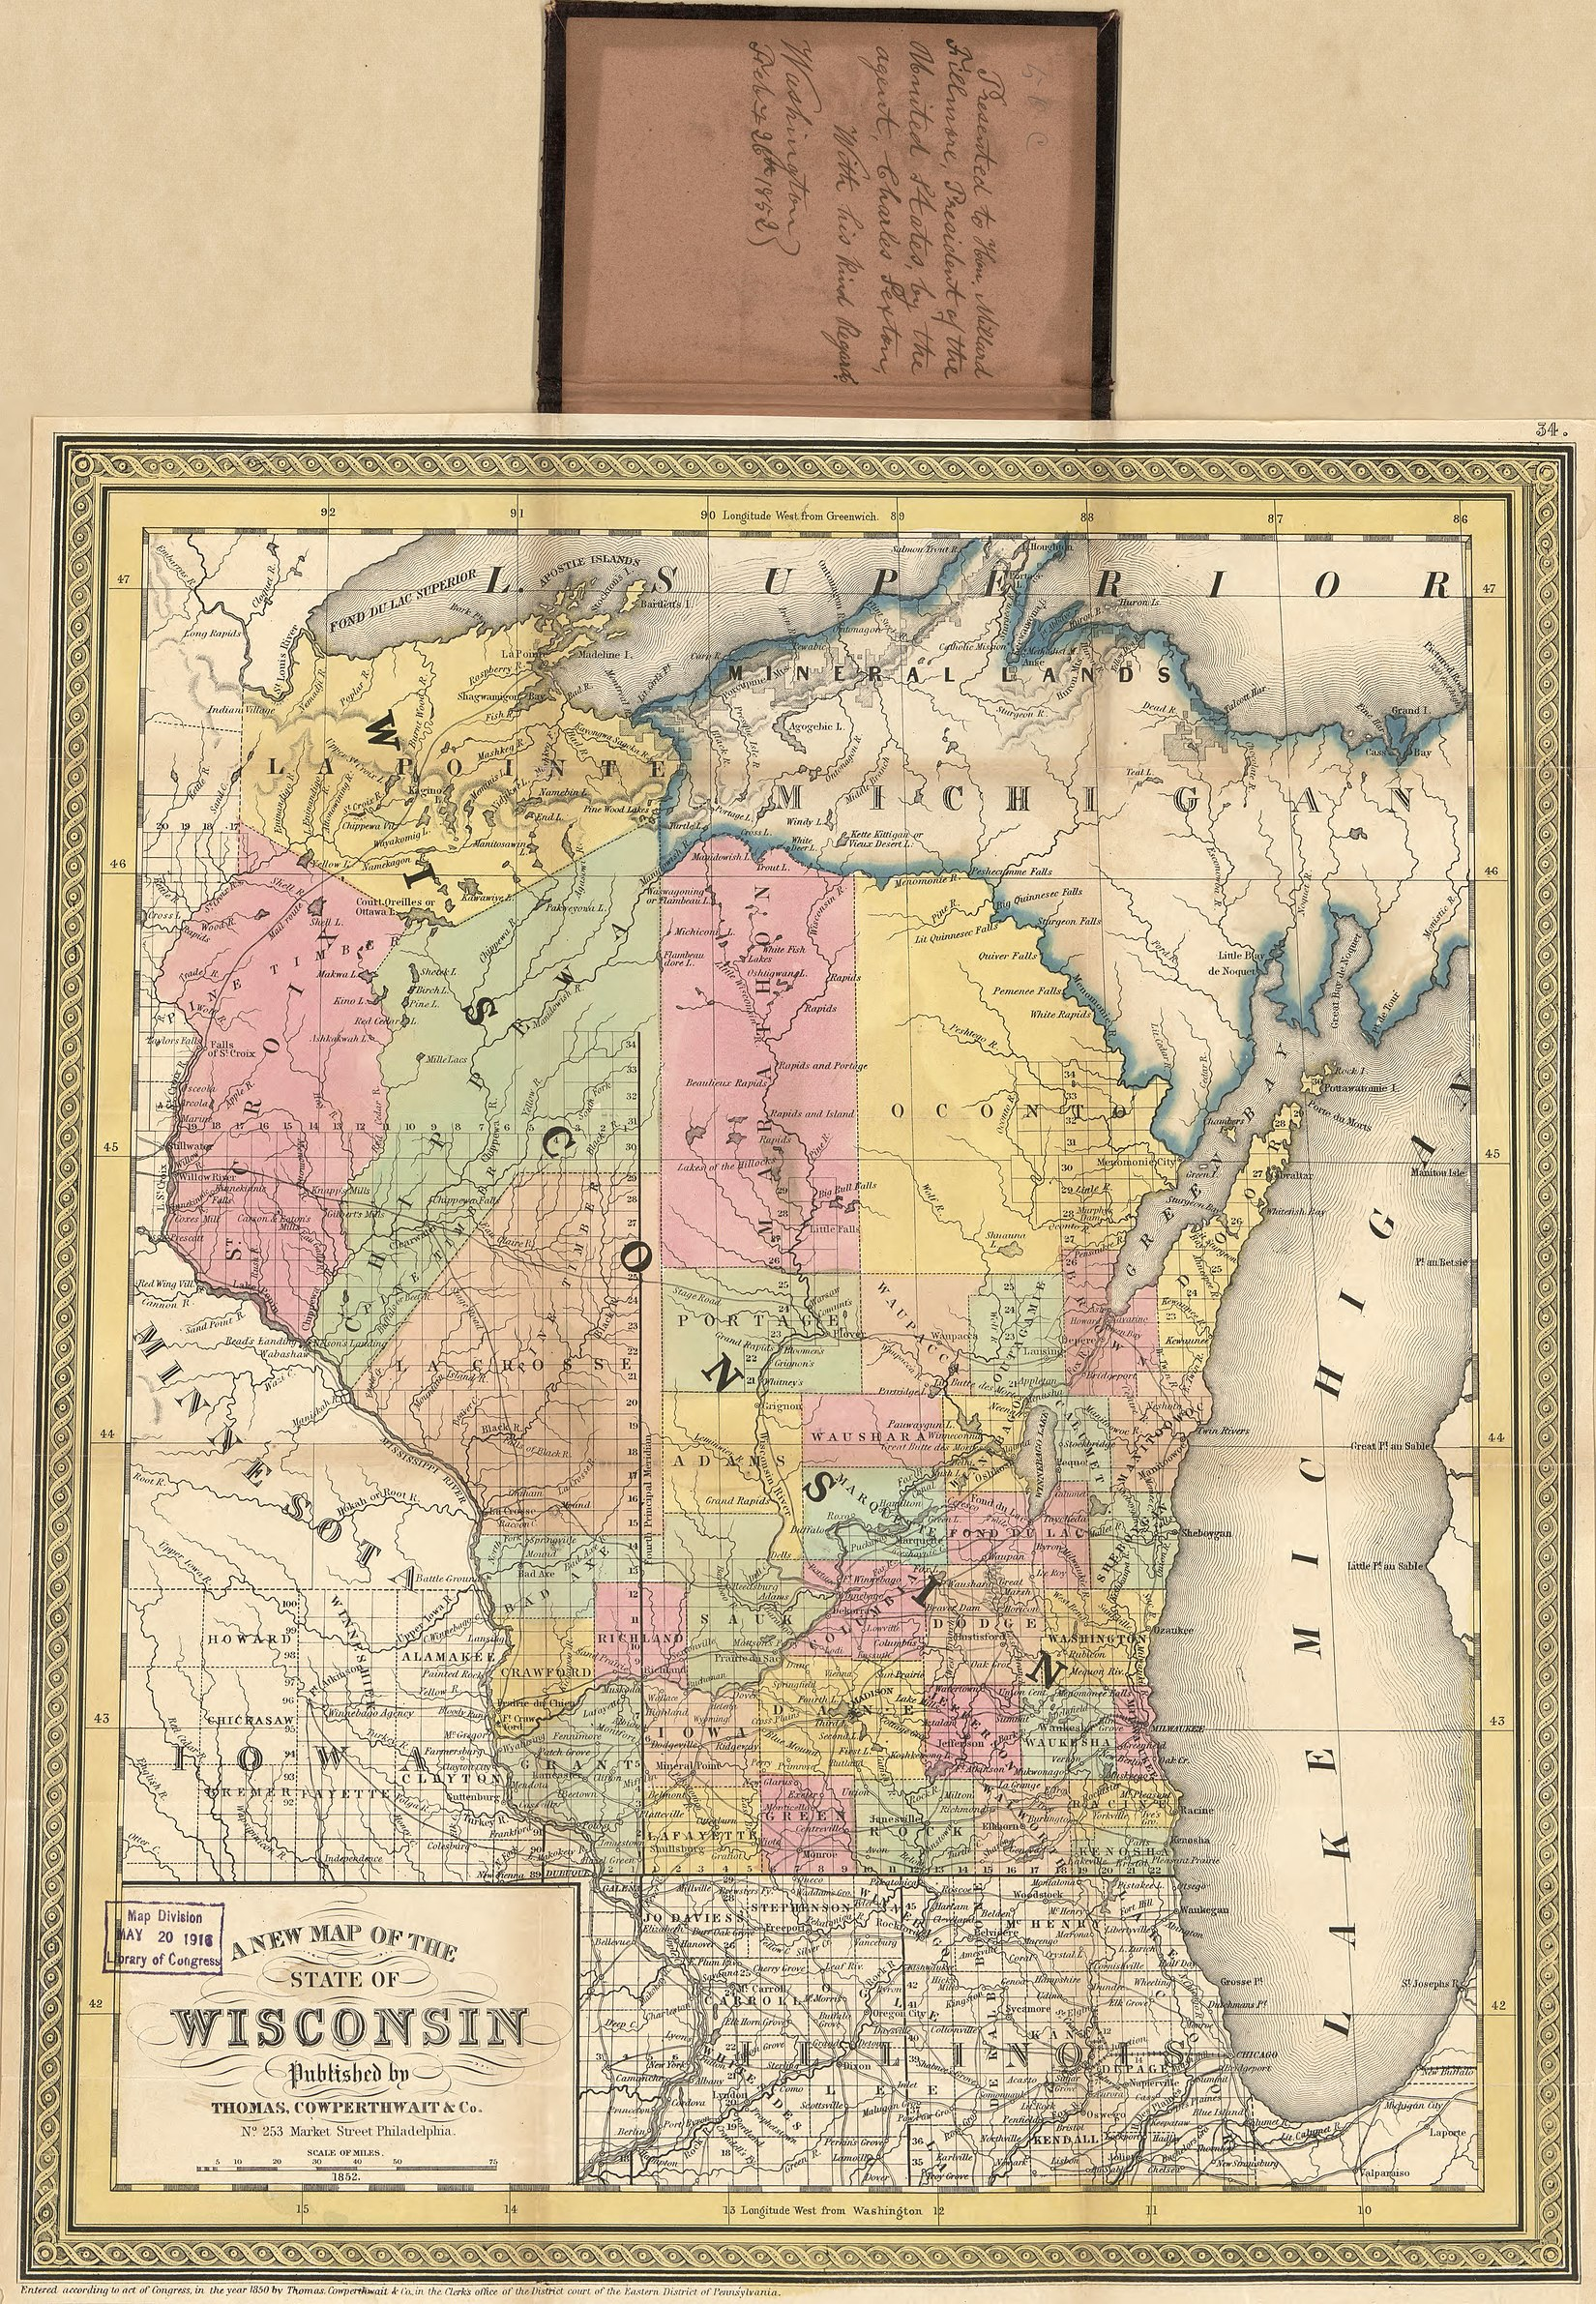 1852 boundaries of Door County, prior to the separation of Kewaunee County in 1852